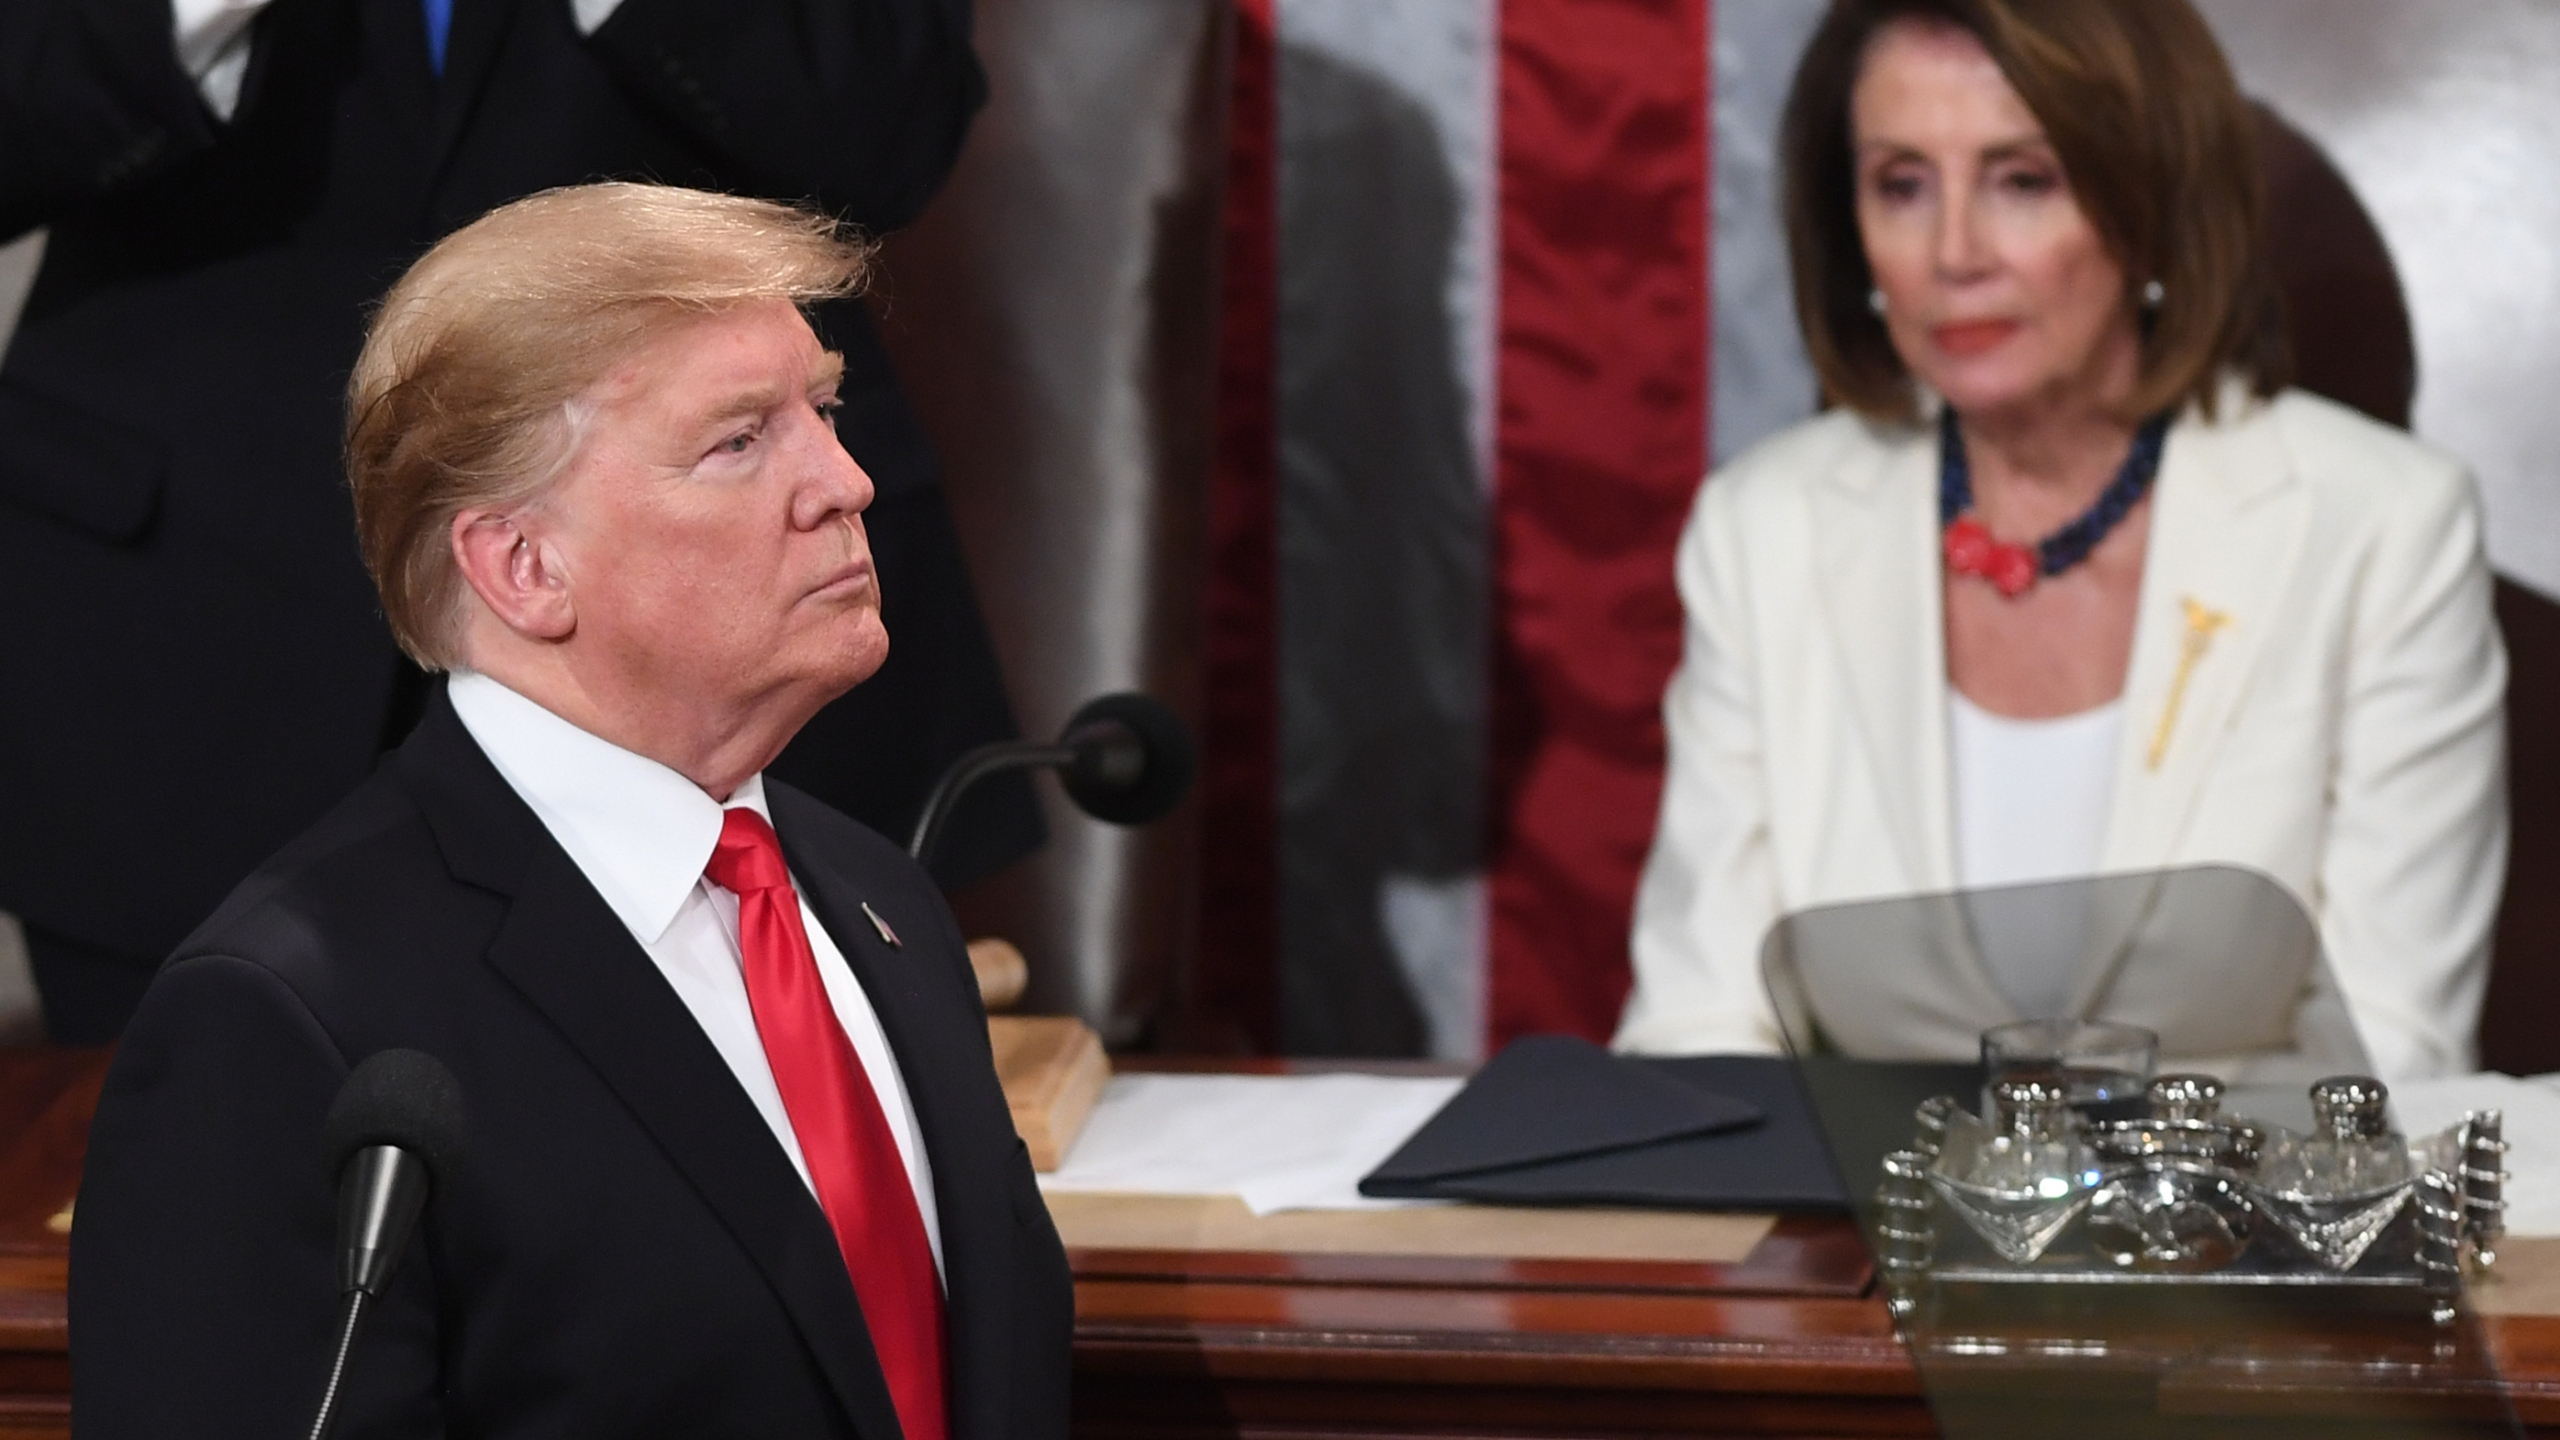 Donald Trump and Speaker of the U.S. House of Representatives Nancy Pelosi appear at the State of the Union address at the U.S. Capitol in Washington, D.C, on Feb. 5, 2019. (Credit: SAUL LOEB/AFP/Getty Images)